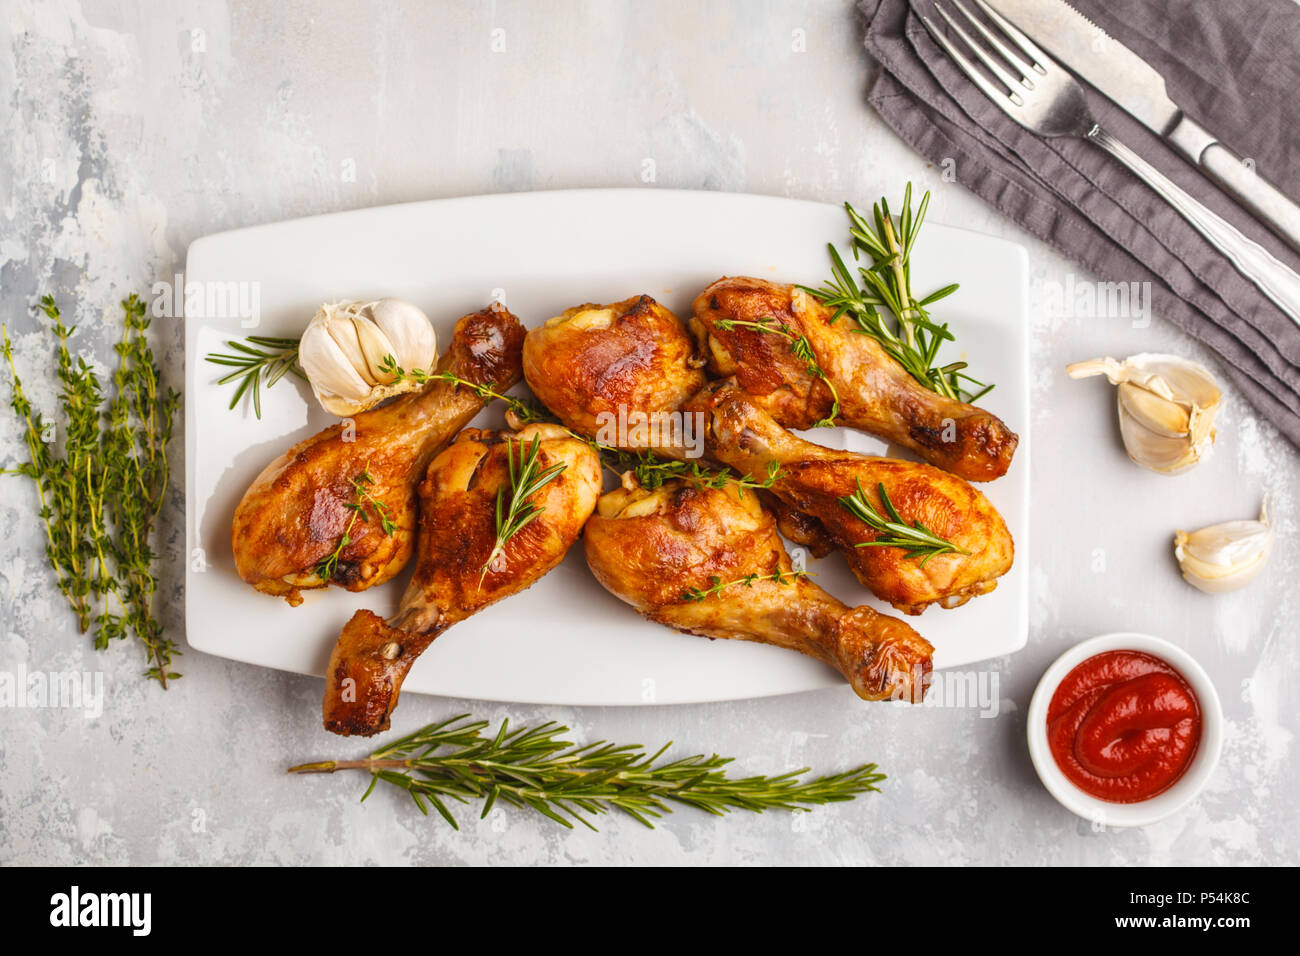 Grilled spicy chicken legs baked with garlic, rosemary and thyme in white dish on white background. - Stock Image